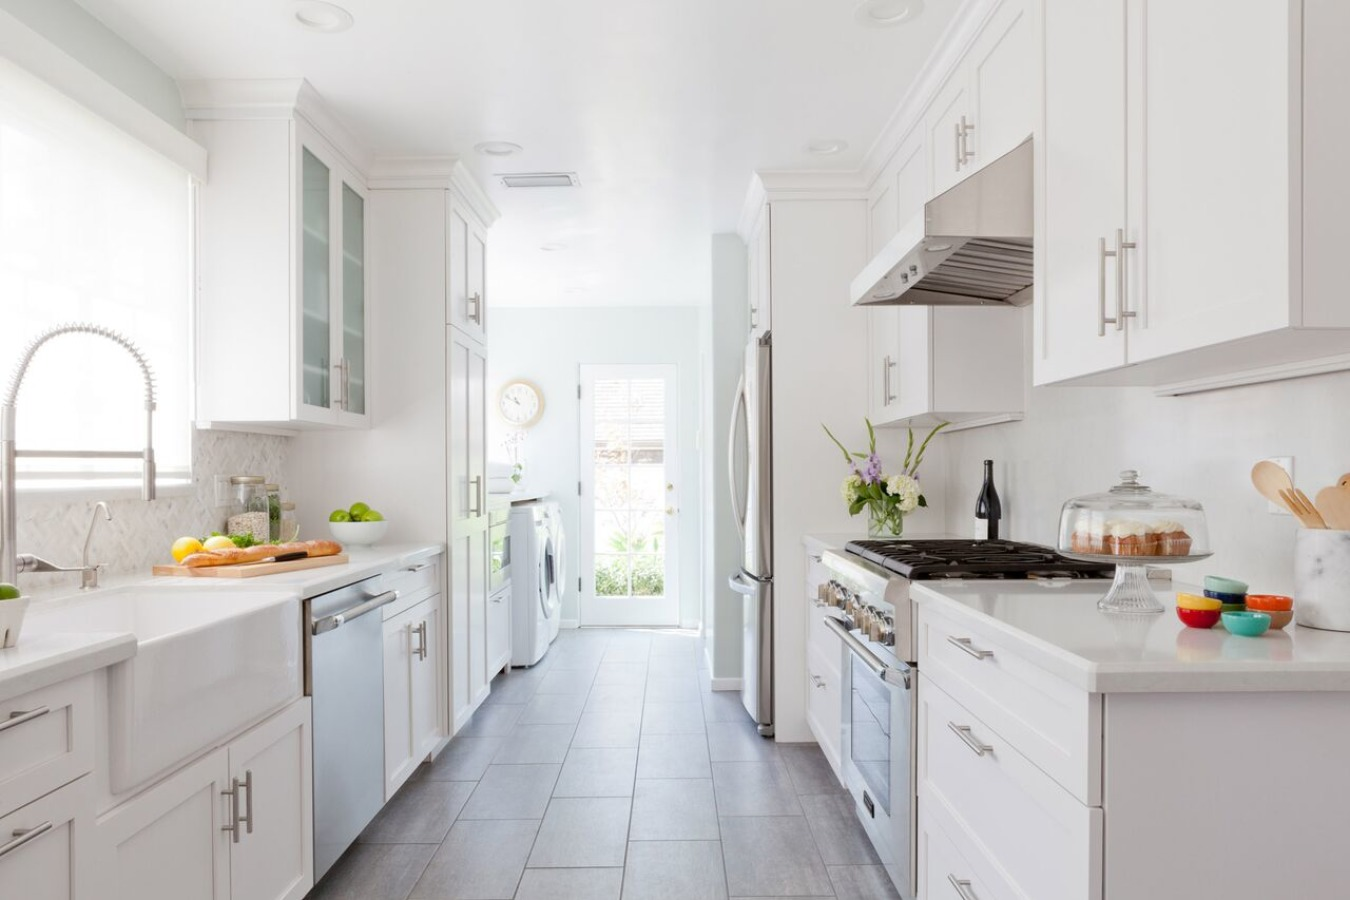 All White Galley Kitchen Photo Source Homedreamy